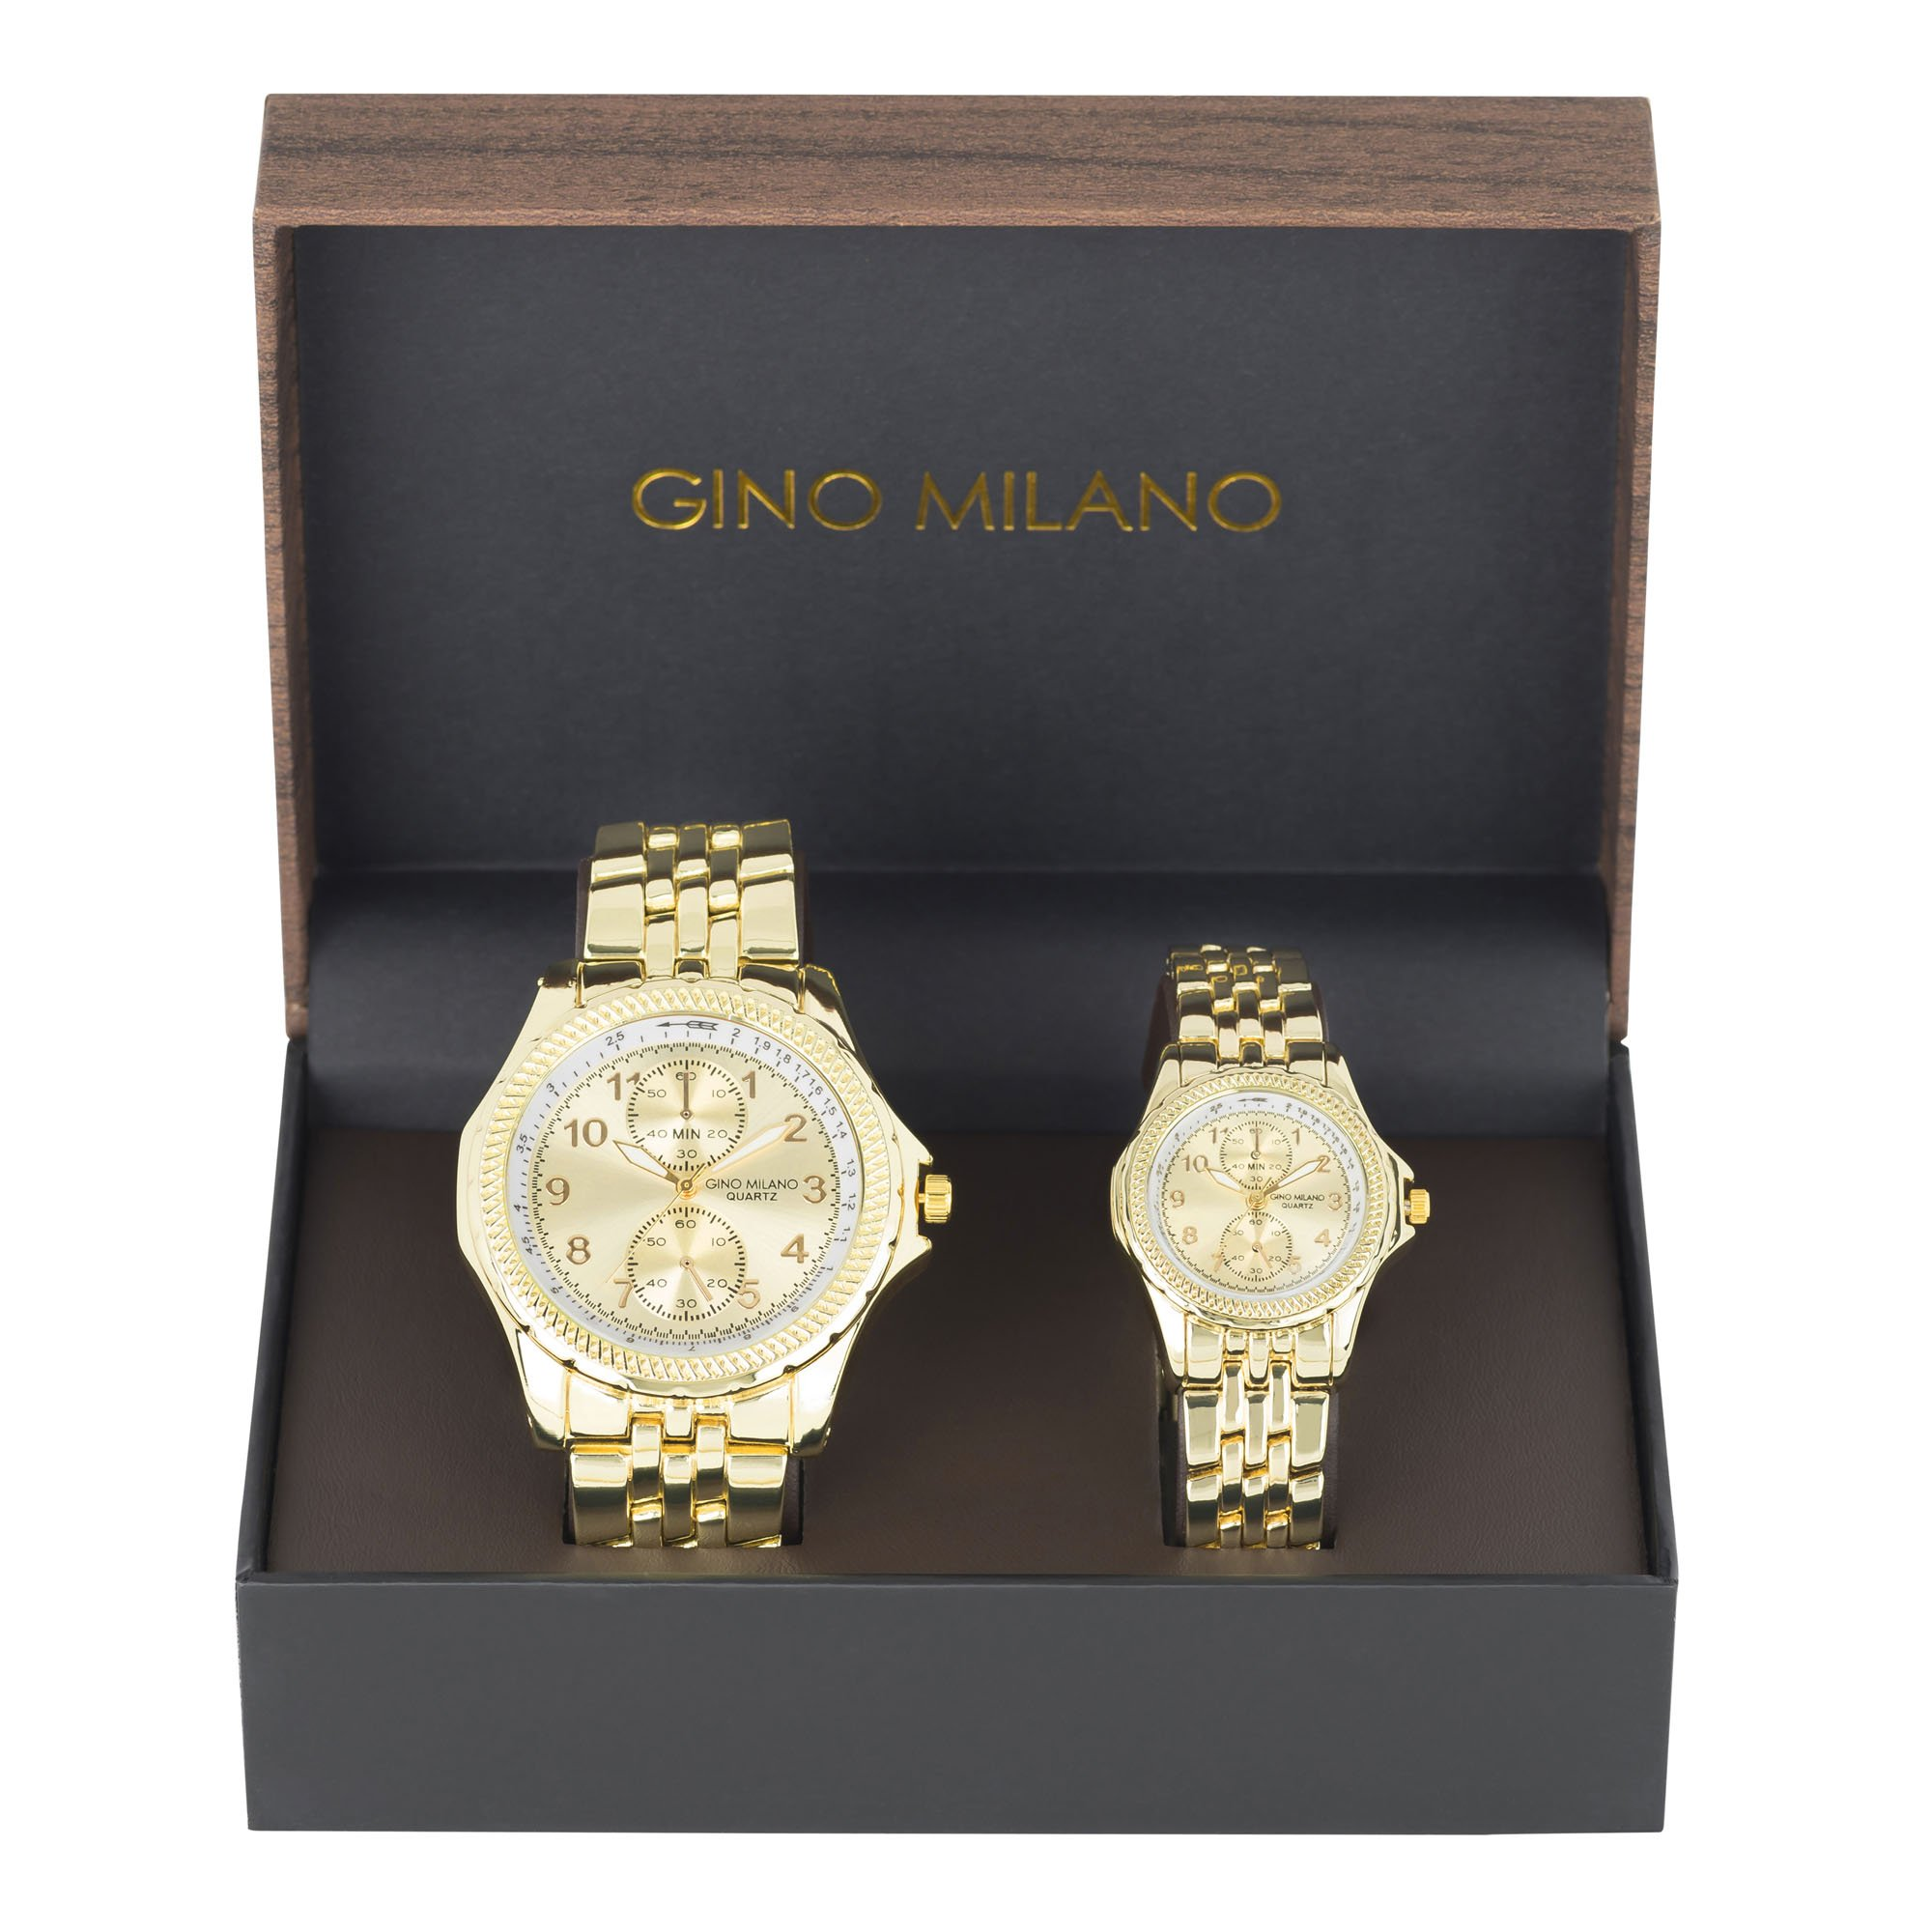 His and Her Watch Sets - 2 Piece Matching Gift Set by Gino Milano with Gift Box-6883 Gold